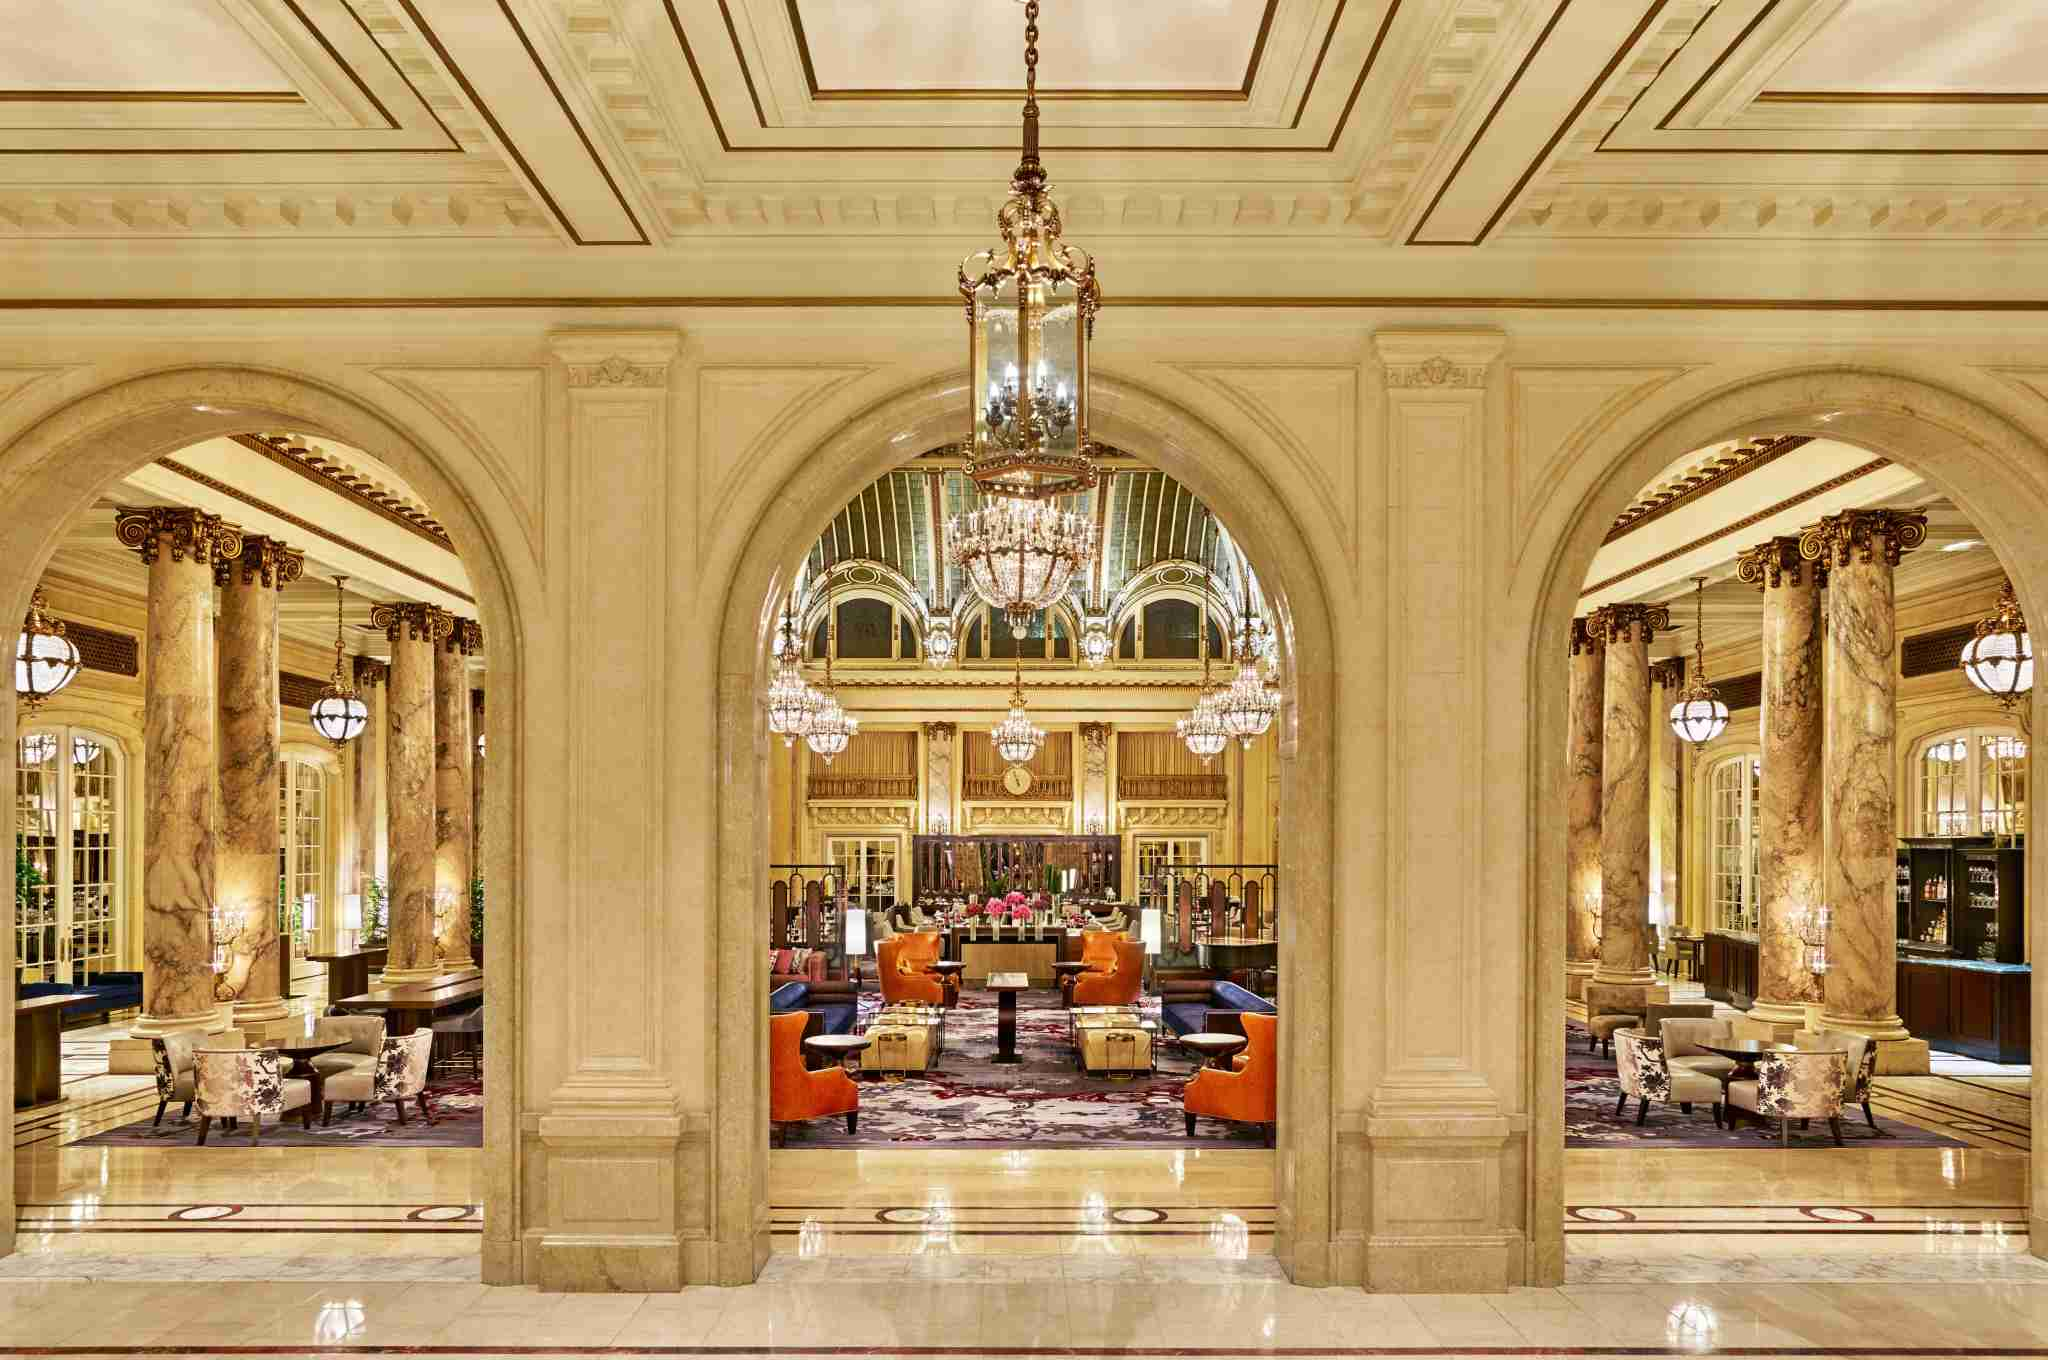 The impressive Garden Court at the Palace Hotel in San Francisco. (photo courtesy of the hotel)